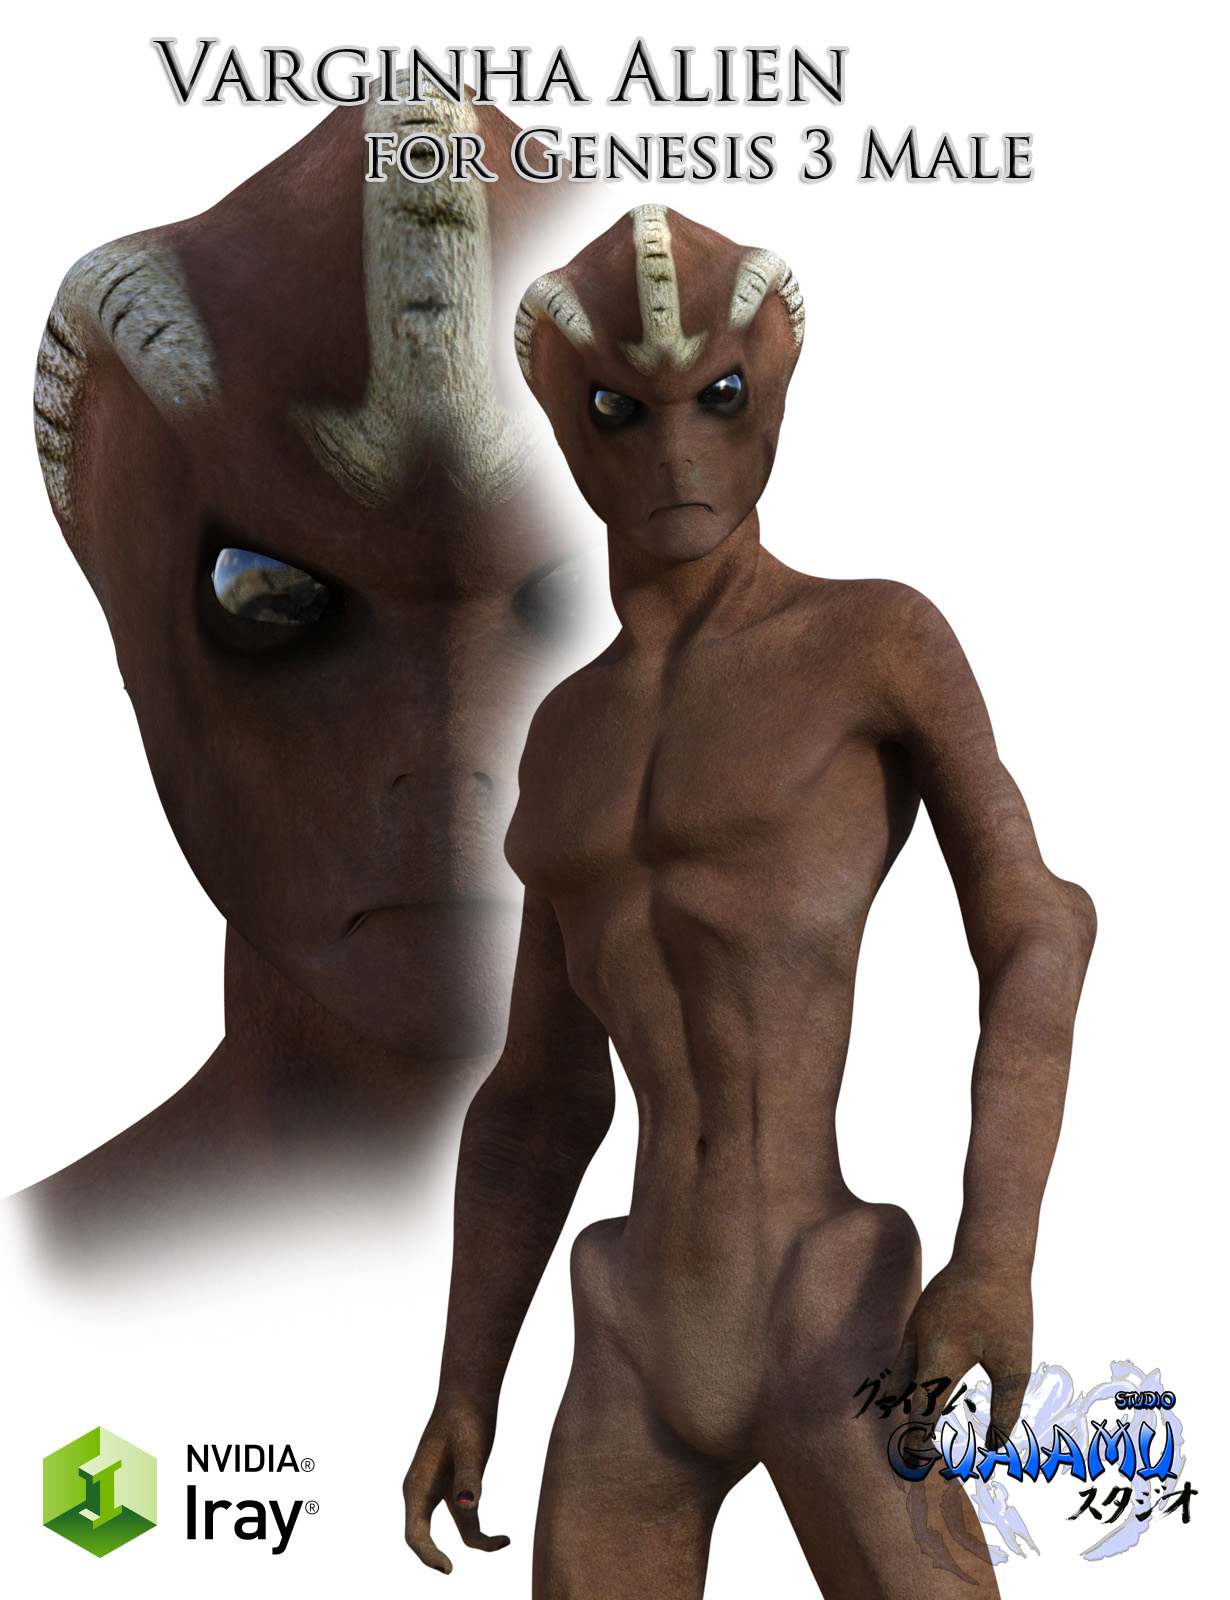 Varginha Alien for Genesis 3 male by guaiamustudio